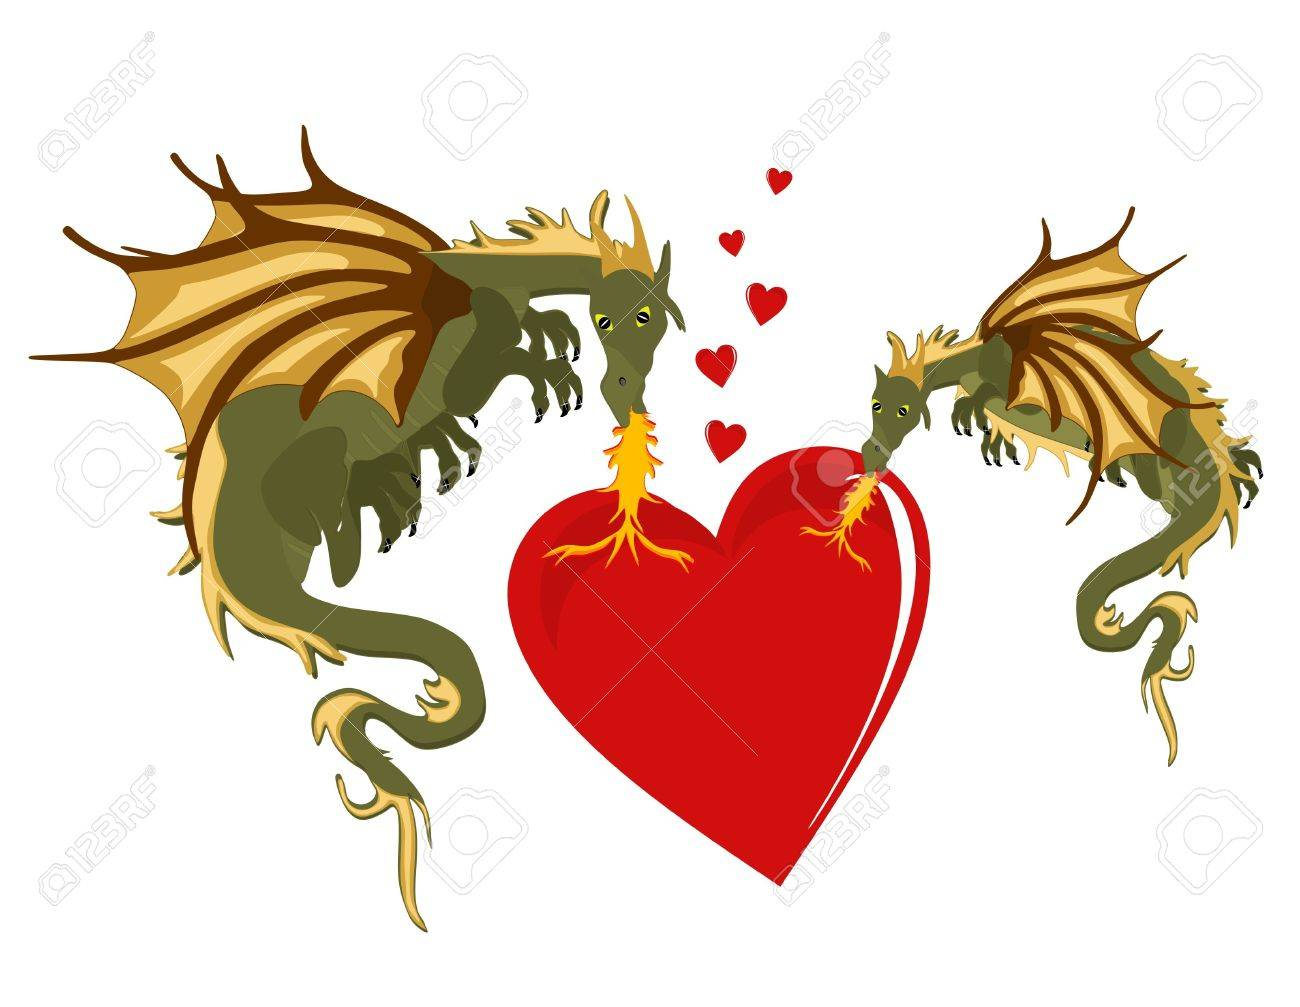 Two dragons heating up the heart with their flames of romance.. Stock Vector - 9716985